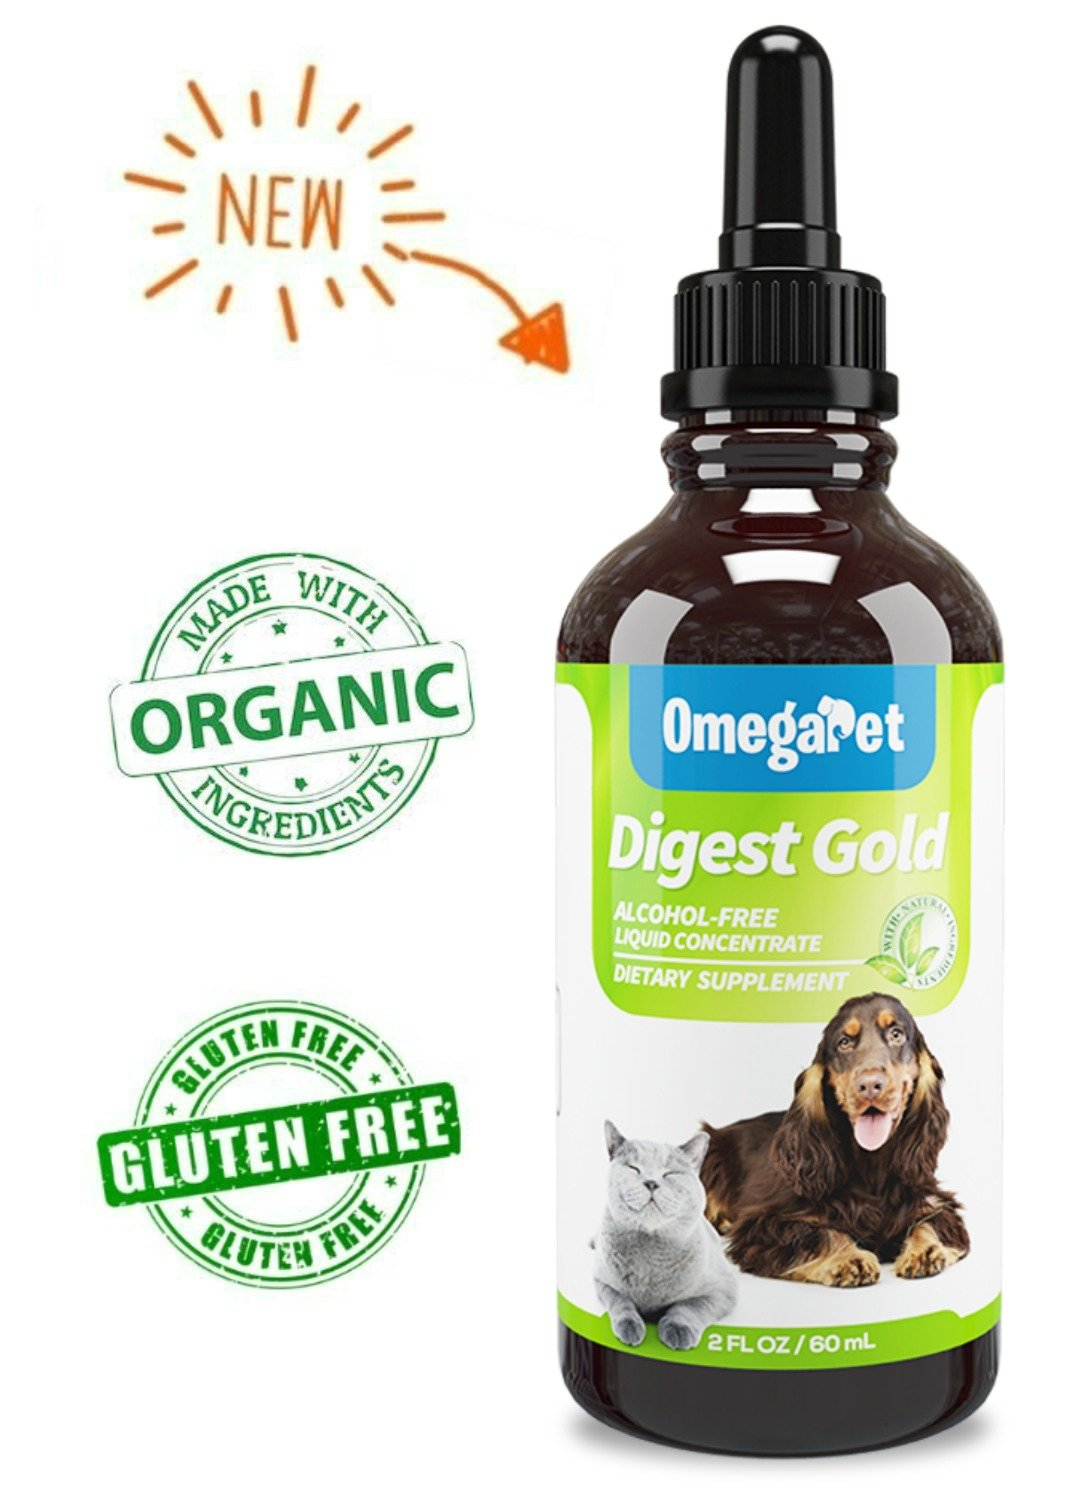 Digestive Enzymes for Dogs and Cats - Liquid Dog Diarrhea Treatment - Organic Consitpation Relief for Dogs - Diarrhea Medicine for Dogs